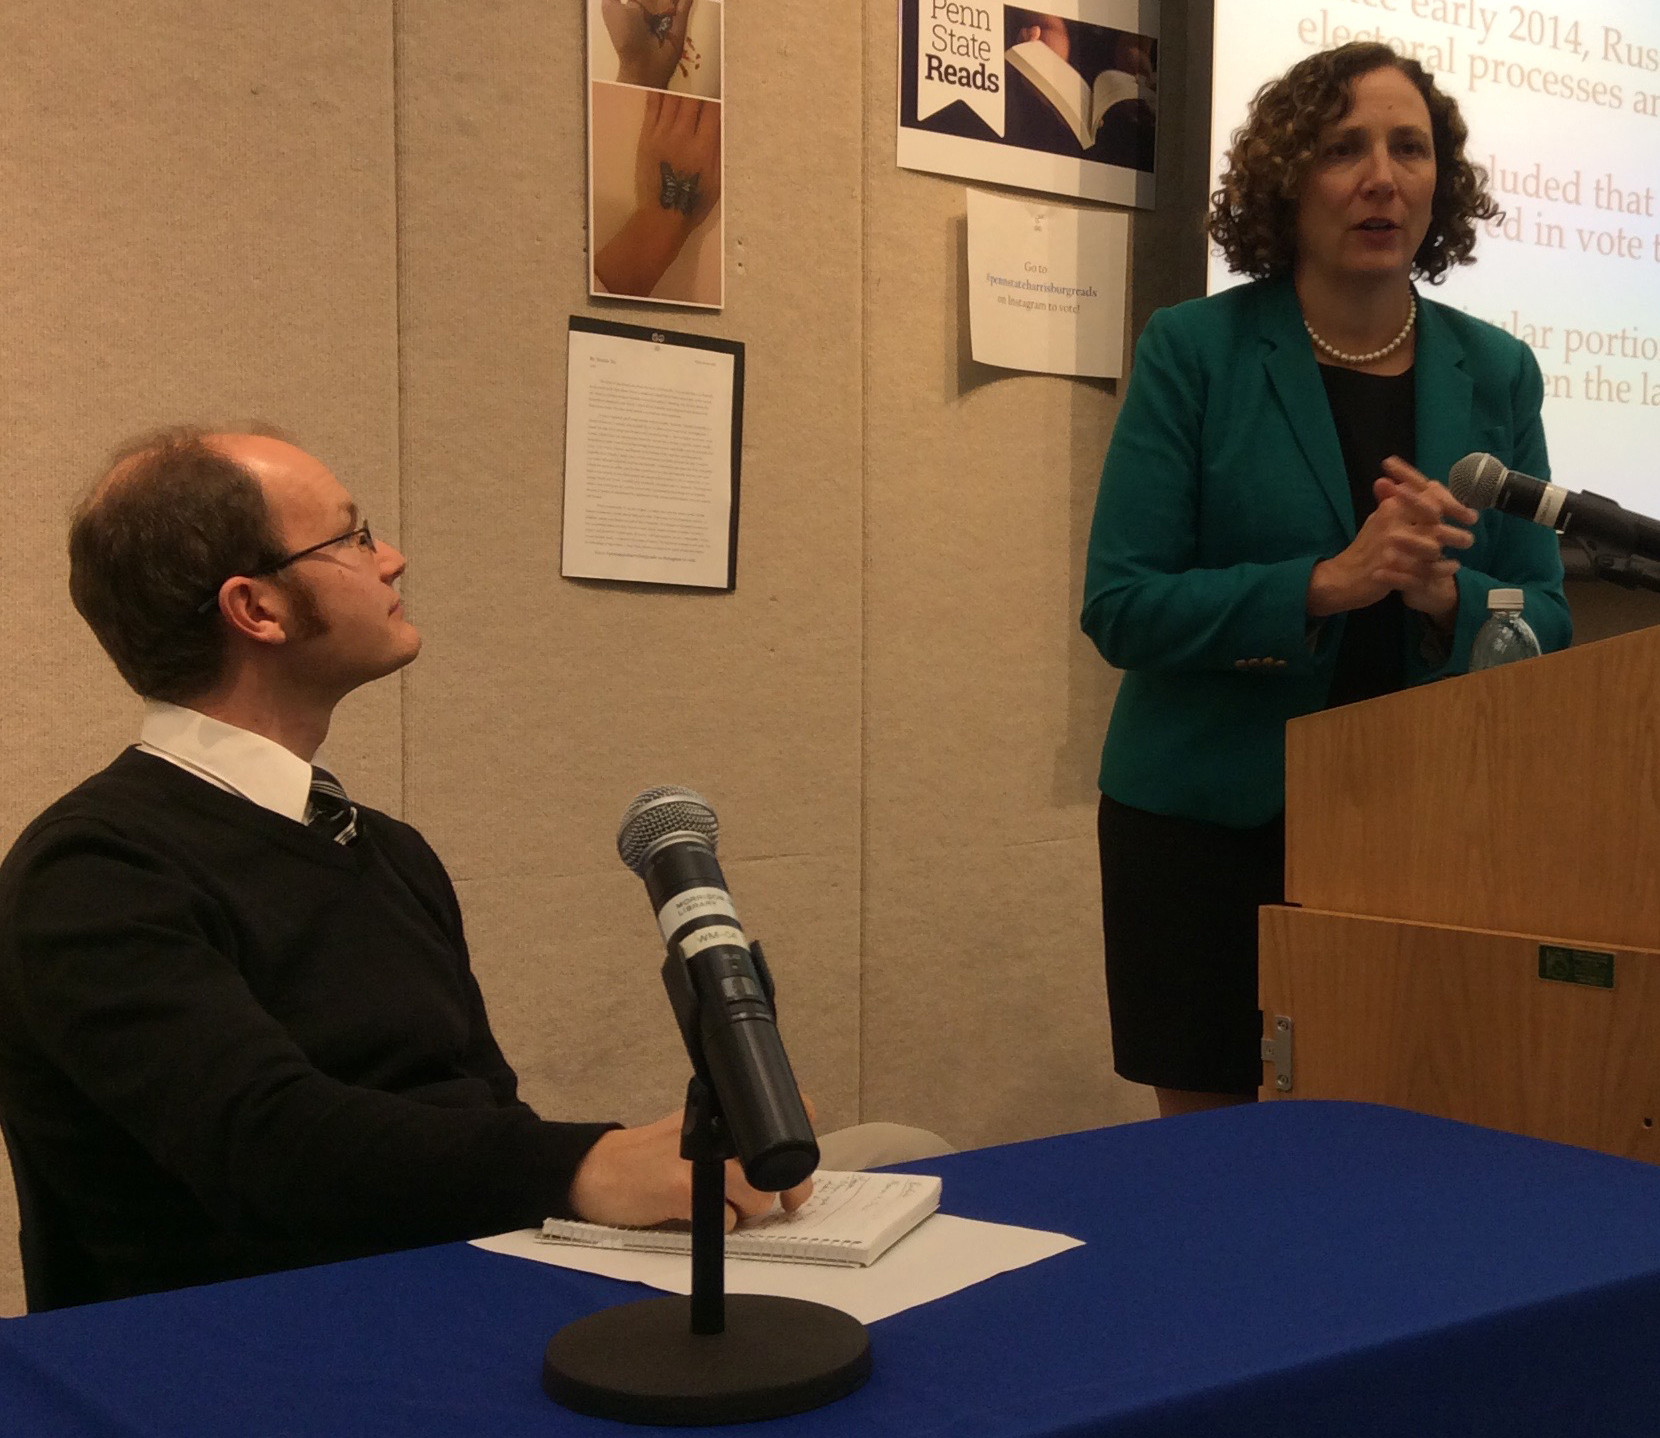 Marian Schneider (right), president of the Verified Voting Foundation, speaks during the Nov. 1 forum on election security at Penn State Harrisburg. At left is moderator Daniel Mallinson, assistant professor of public policy and administration at Penn State Harrisburg.